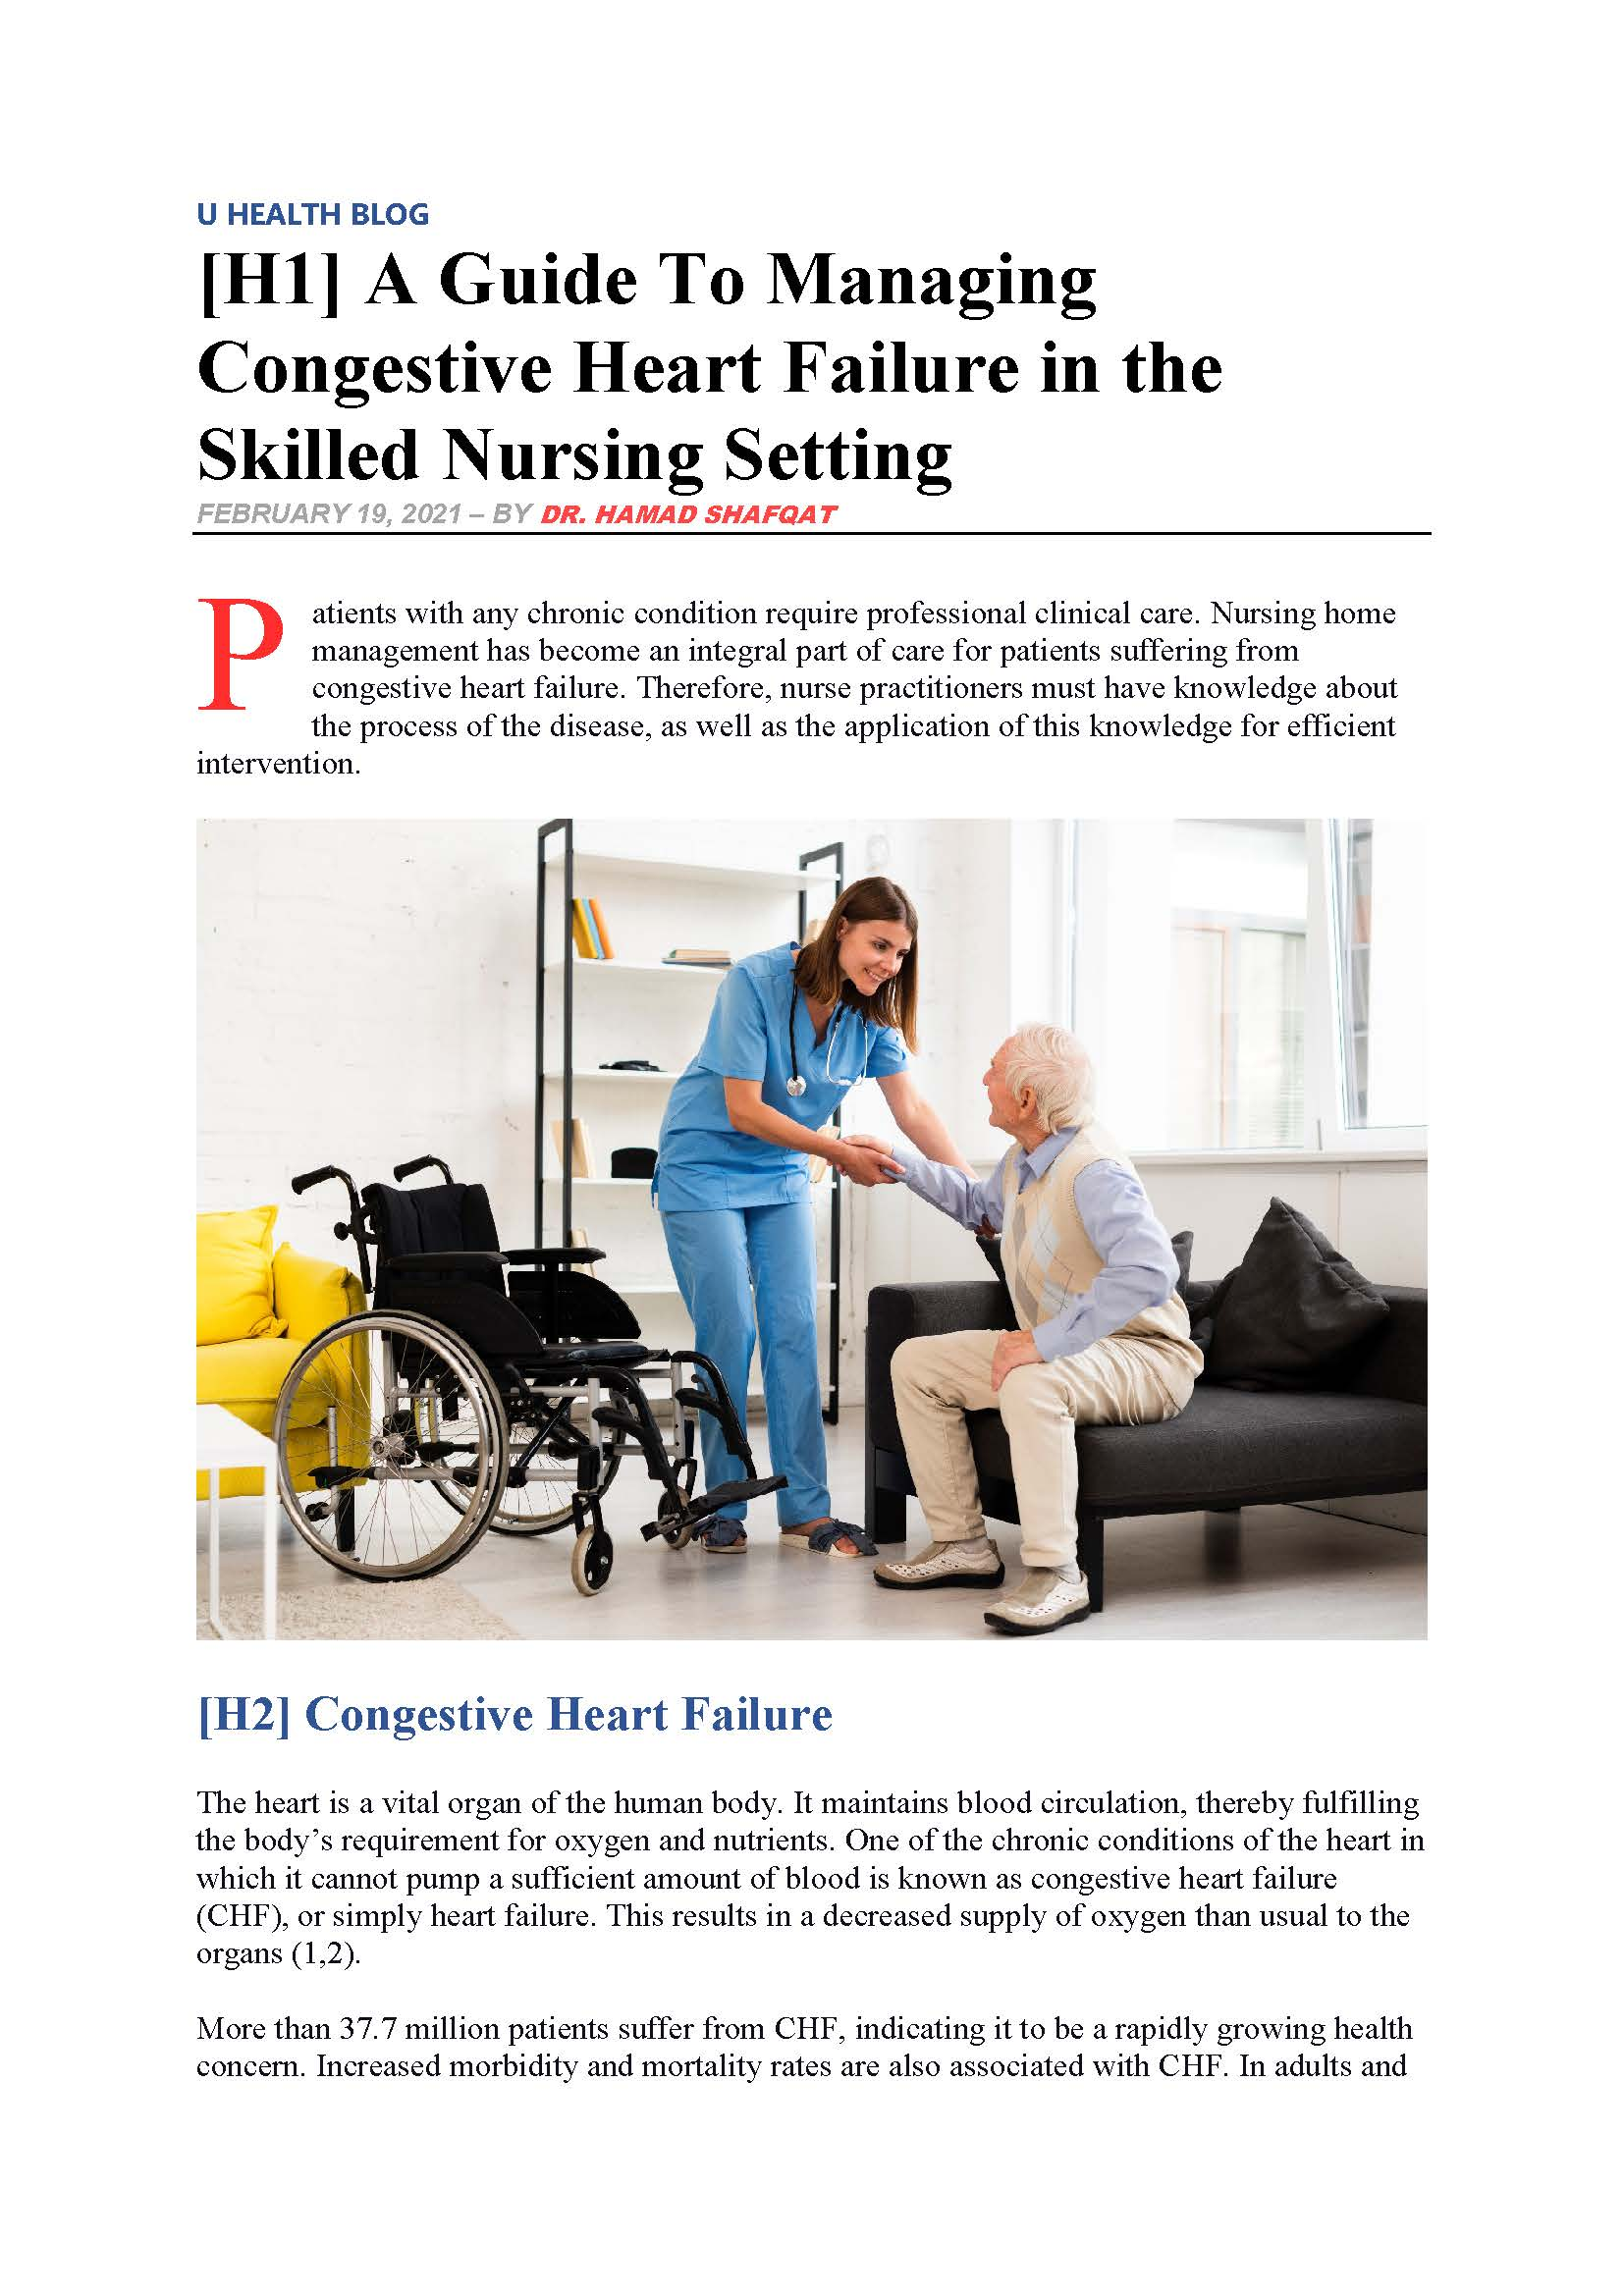 A Guide To Managing Congestive Heart Failure in the Skilled Nursing Setting